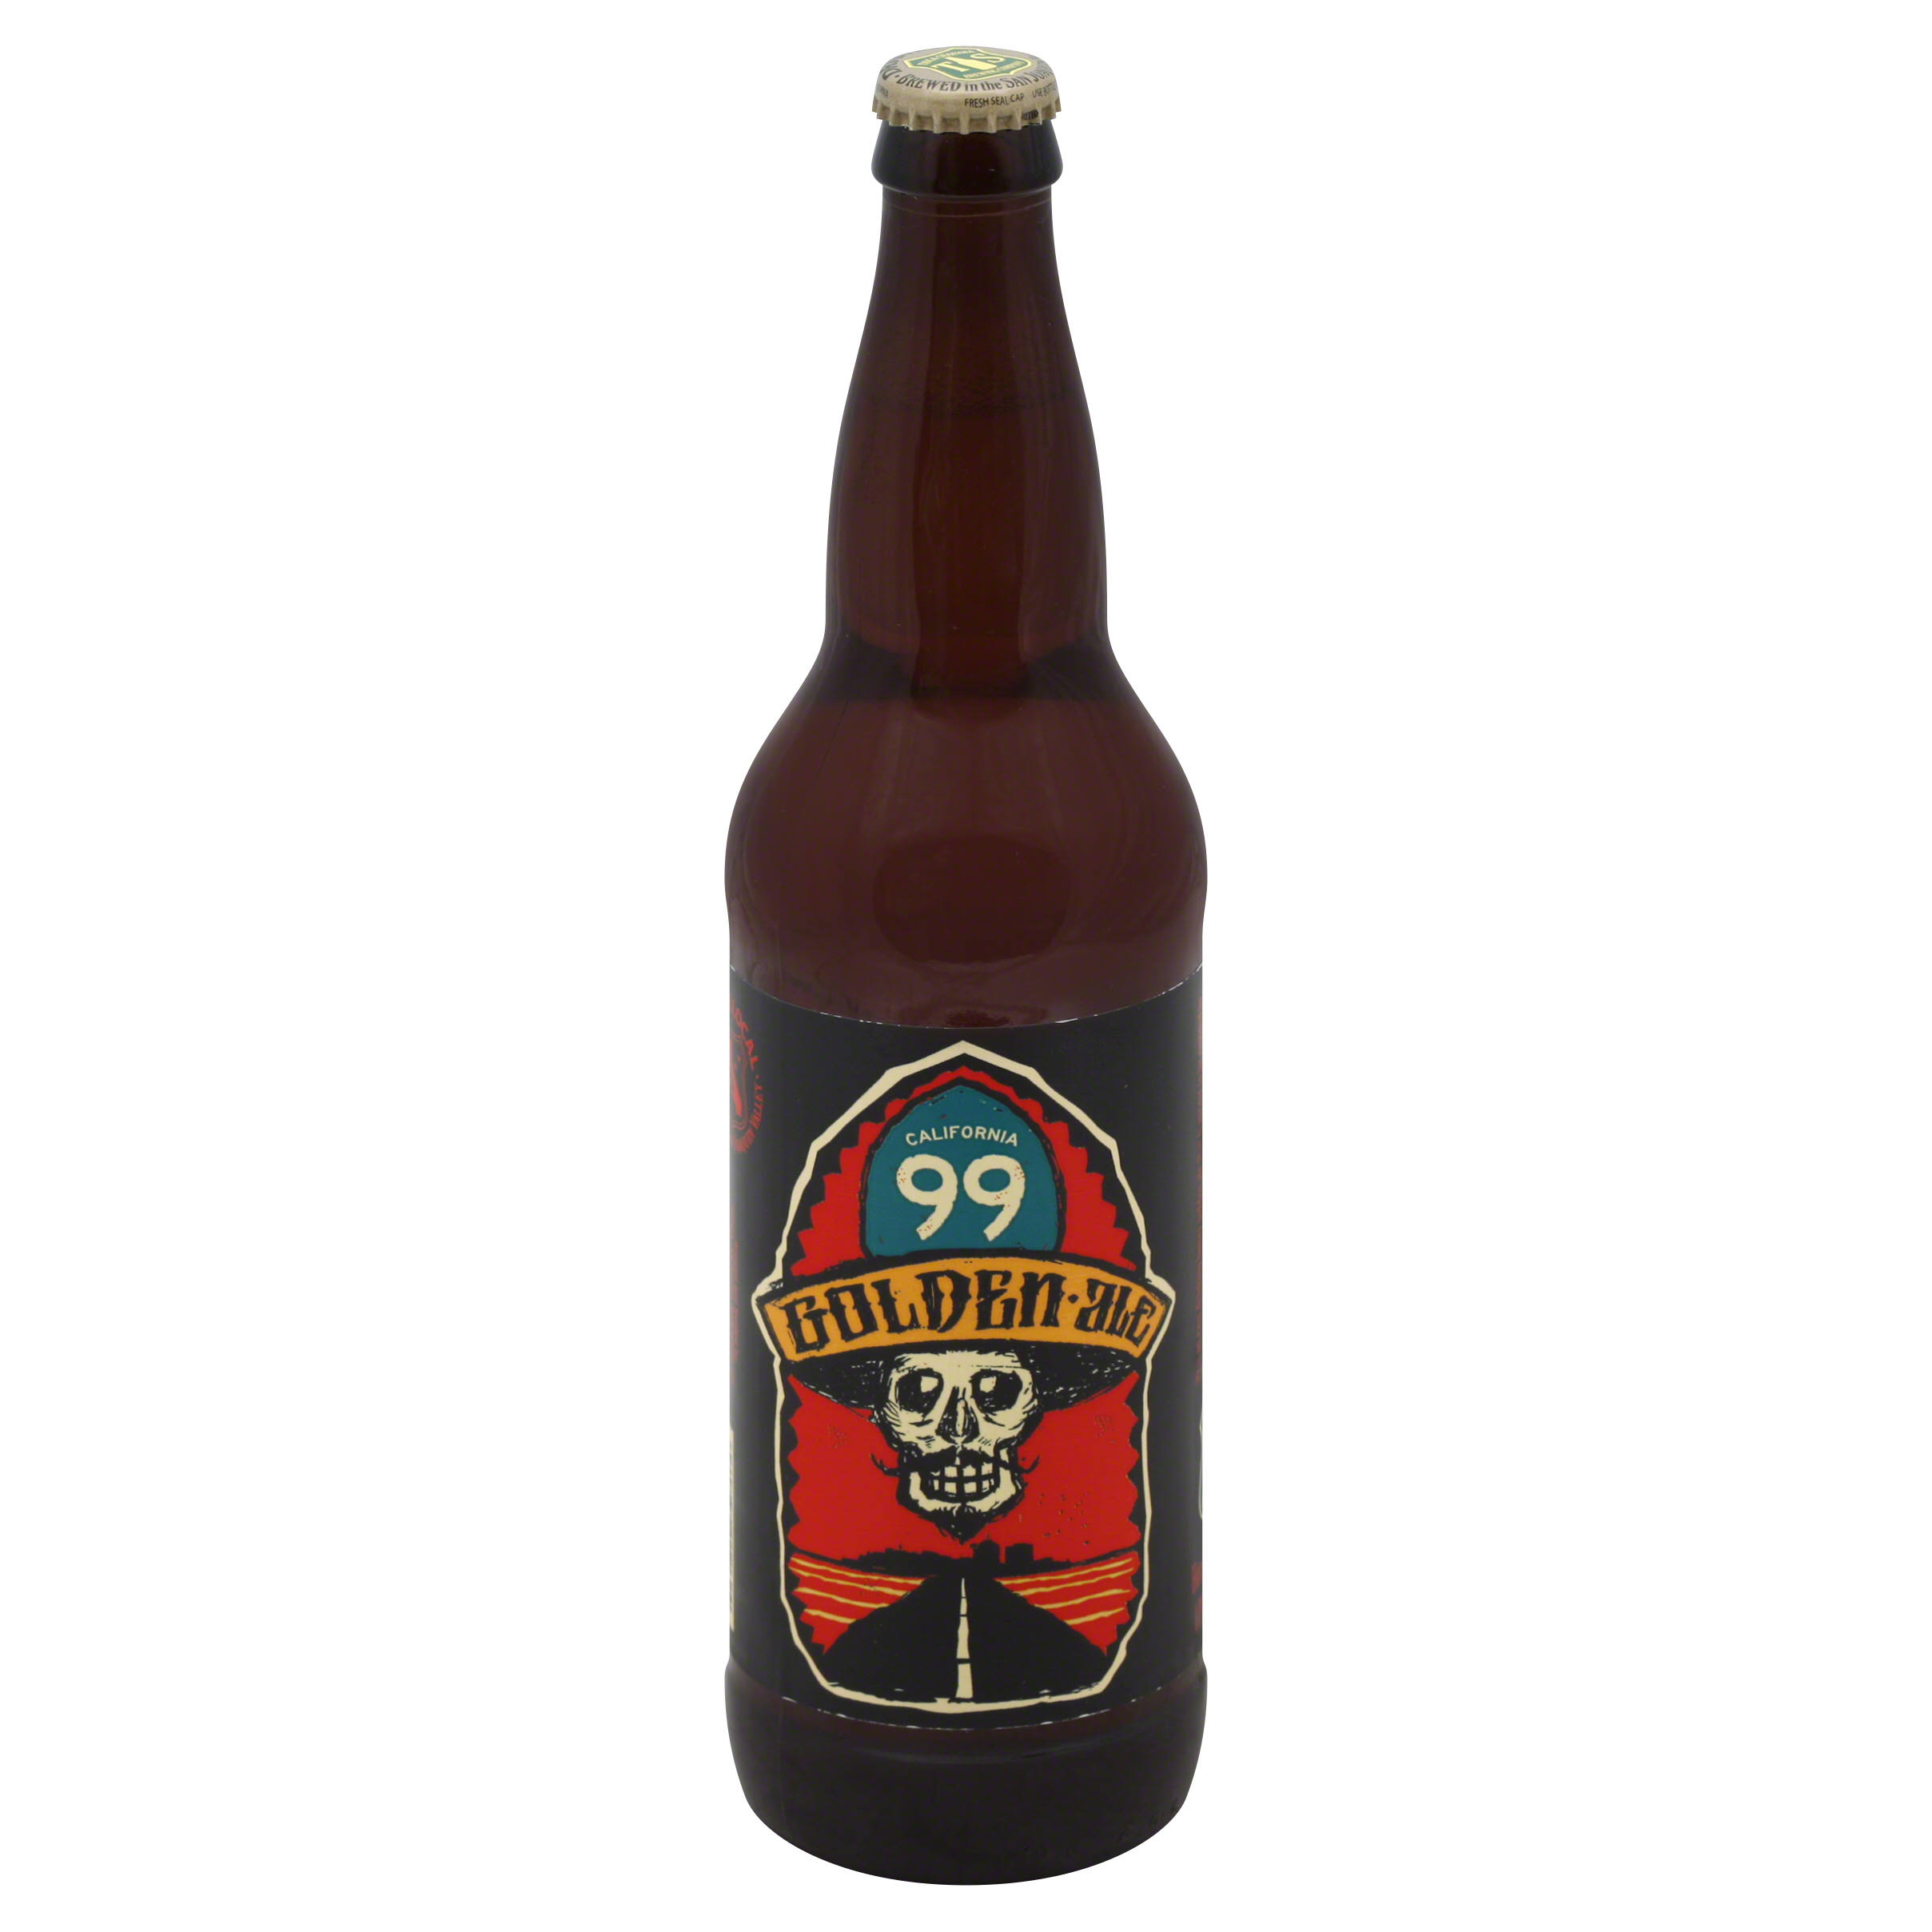 California 99 Honey Golden Ale - 16.9oz